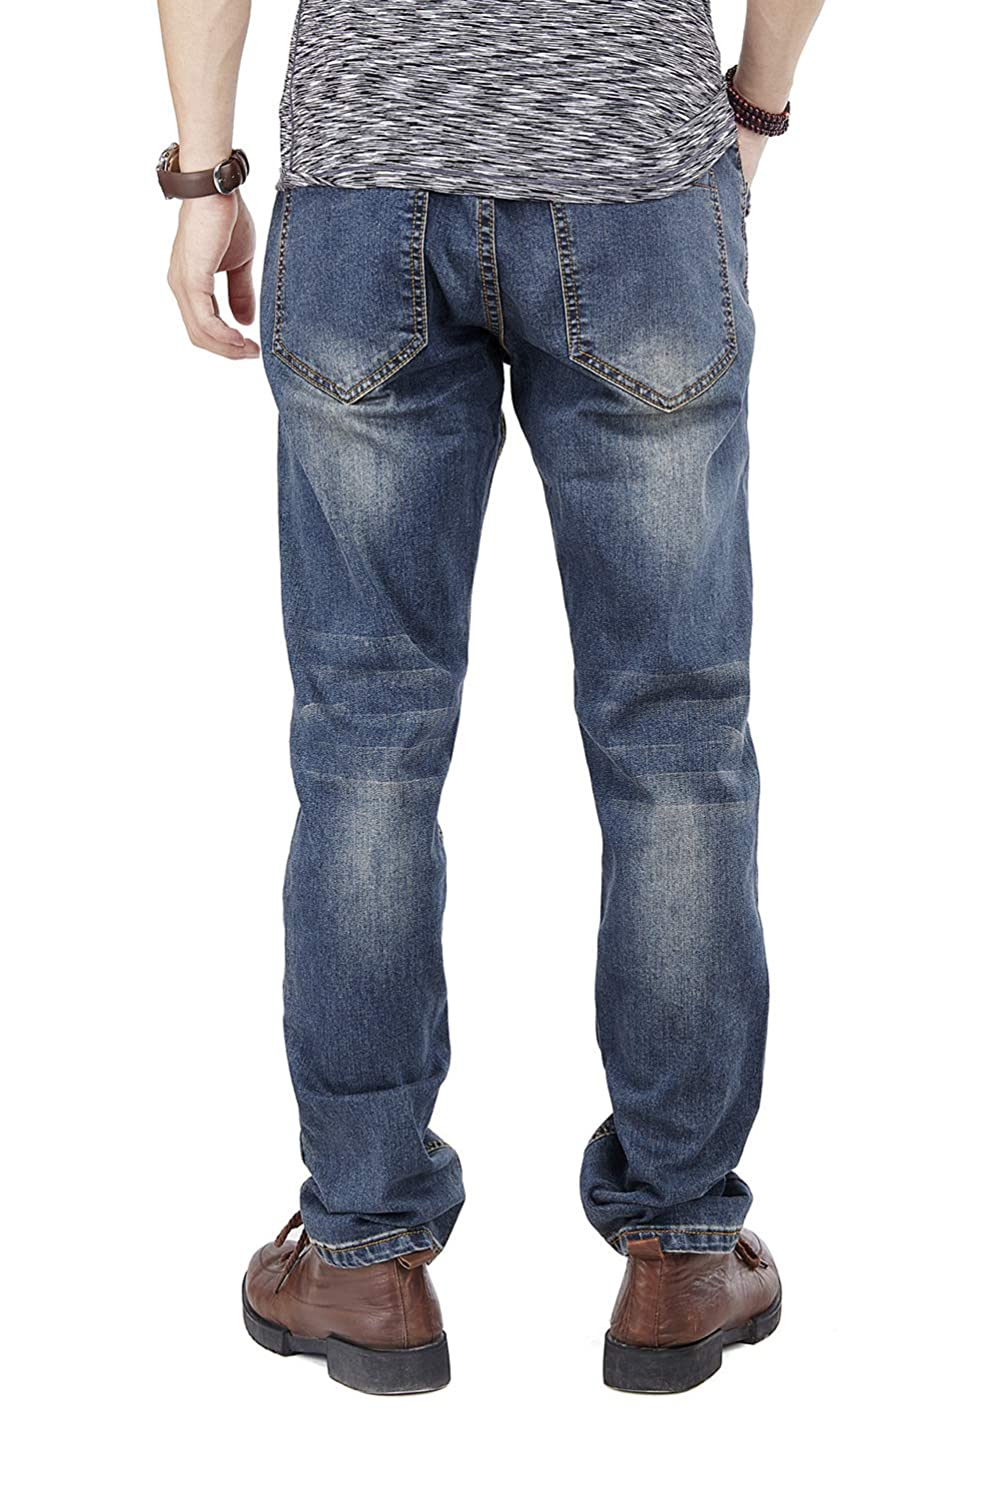 Fashion Mens Jeans Ruiatoo Mens Relaxed-fit Jeans Classic Loose Straight-Leg Jean